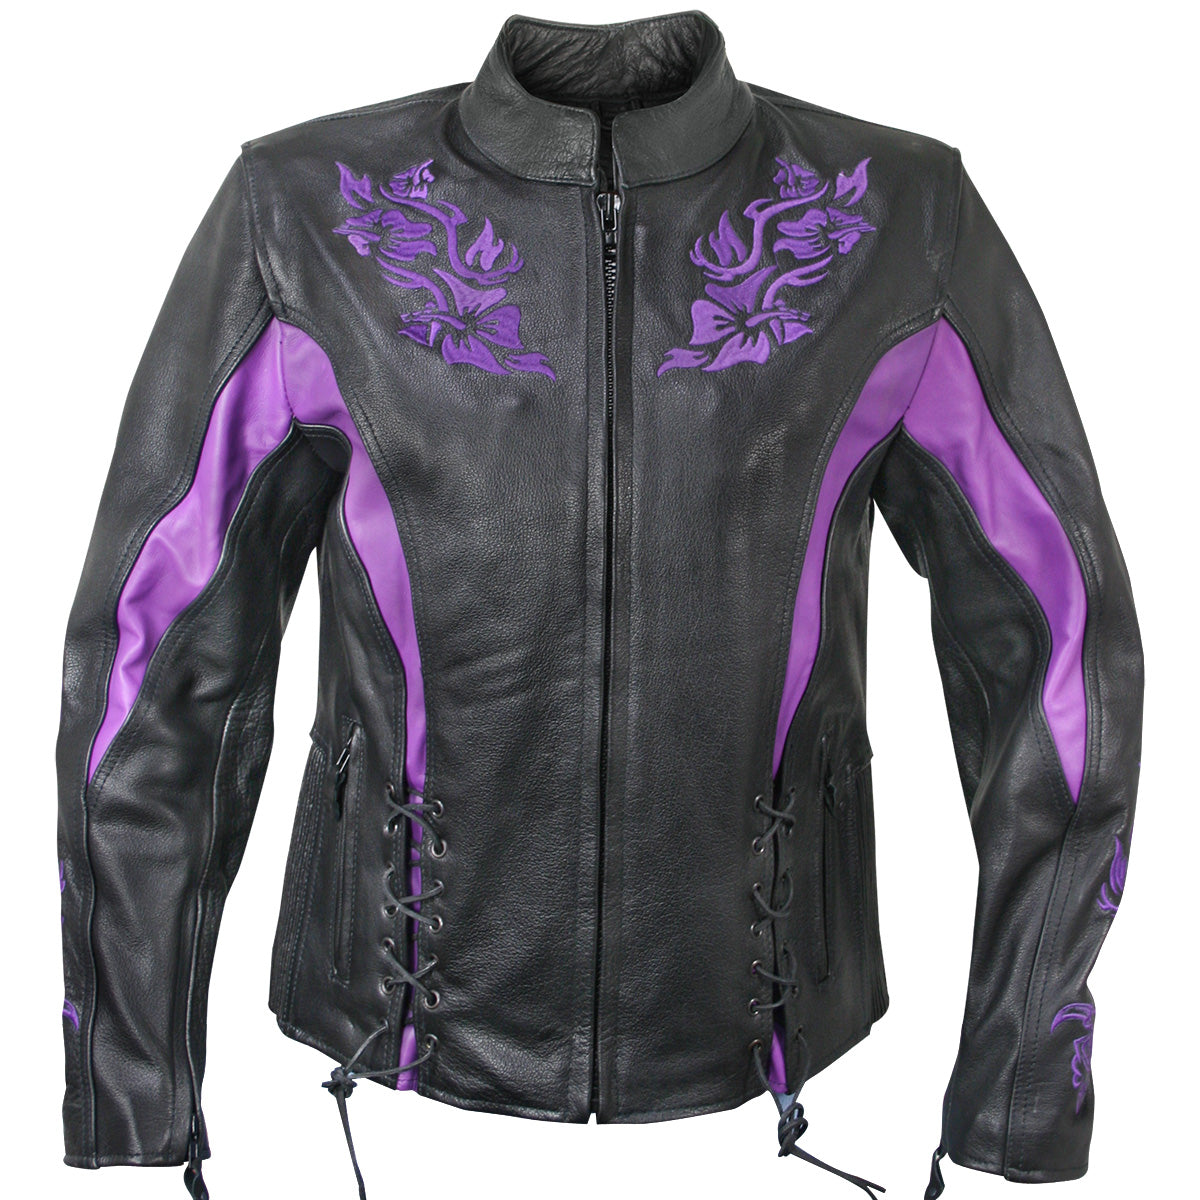 Xelement XS2027 'Gemma' Women's Black and Purple Leather Embroidered Jacket with Armor